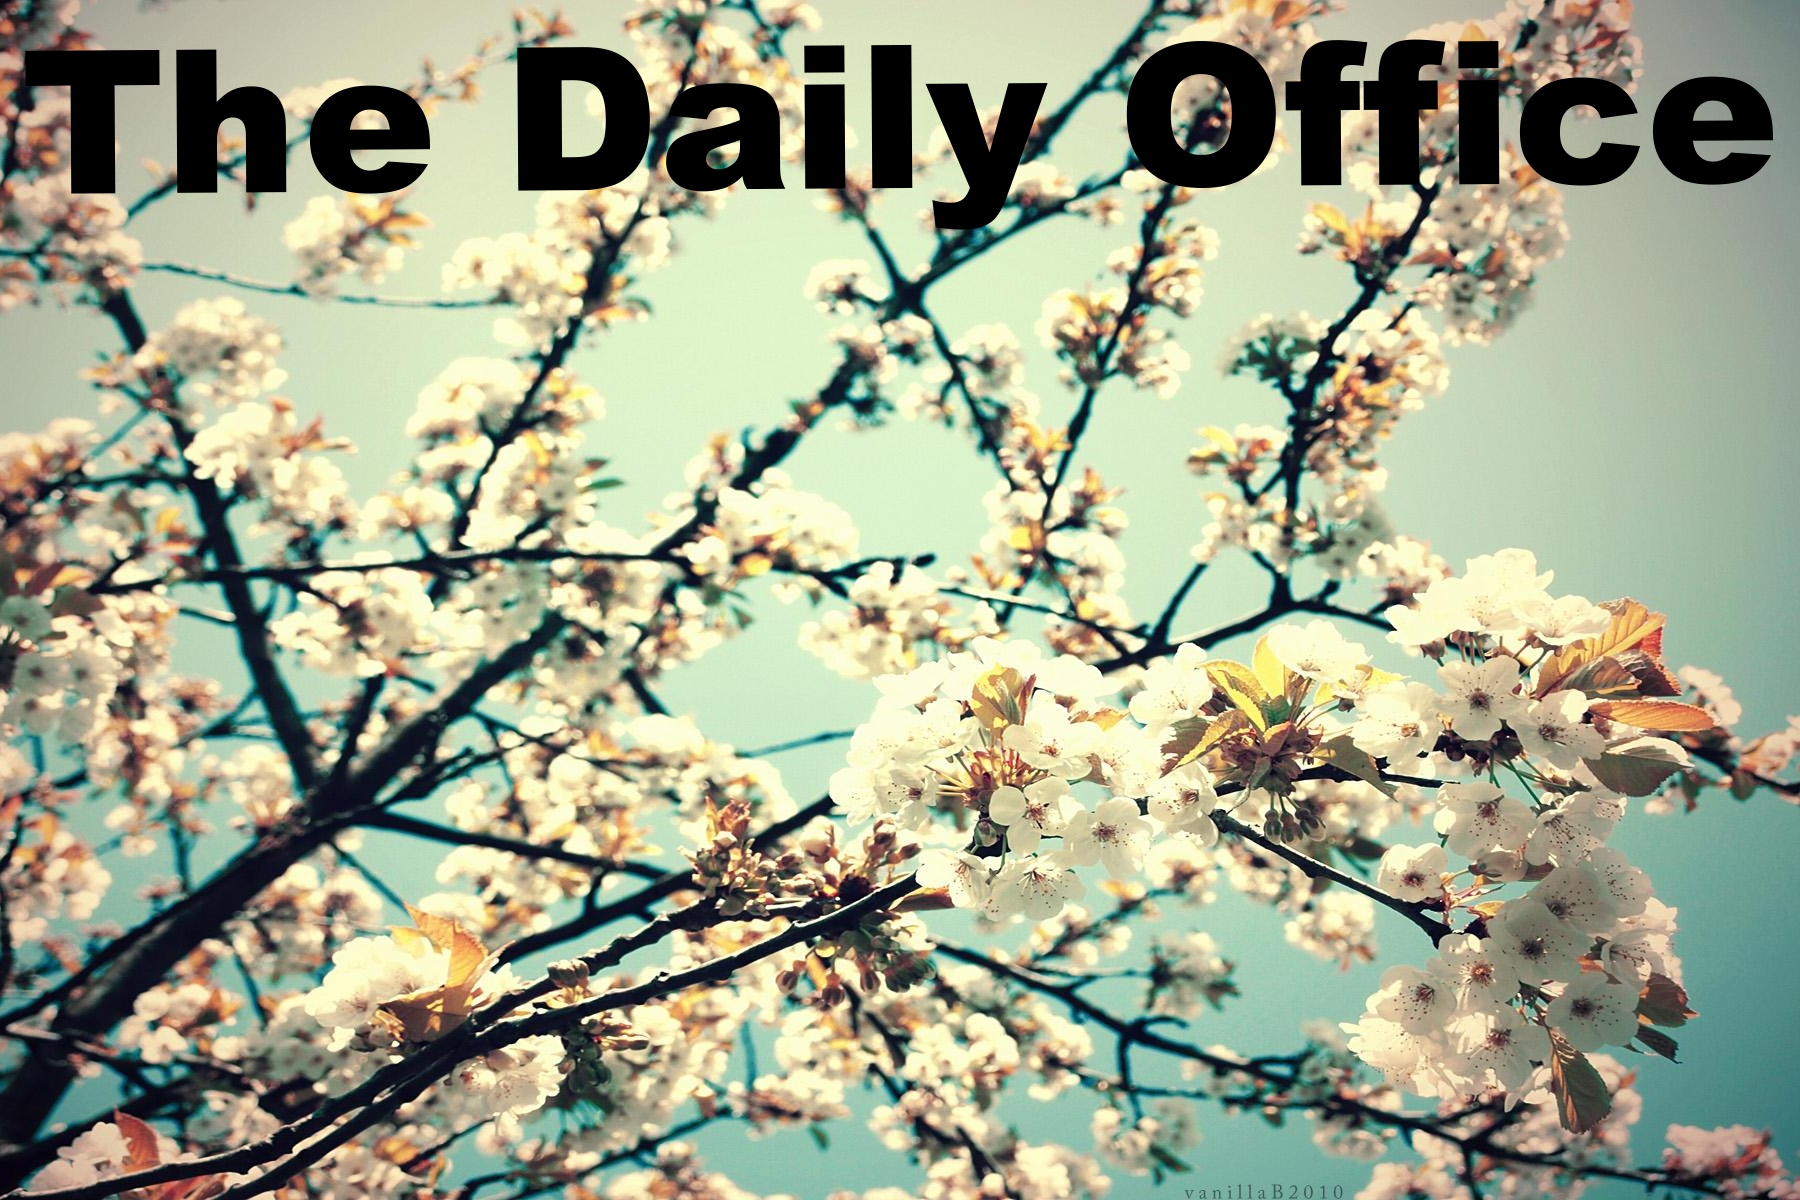 The Daily Office .The Daily Office is presented by the Mission of St. Claire on this web site in various formats for your personal devotions. The formats include downloadable versions for handheld personal information devices.